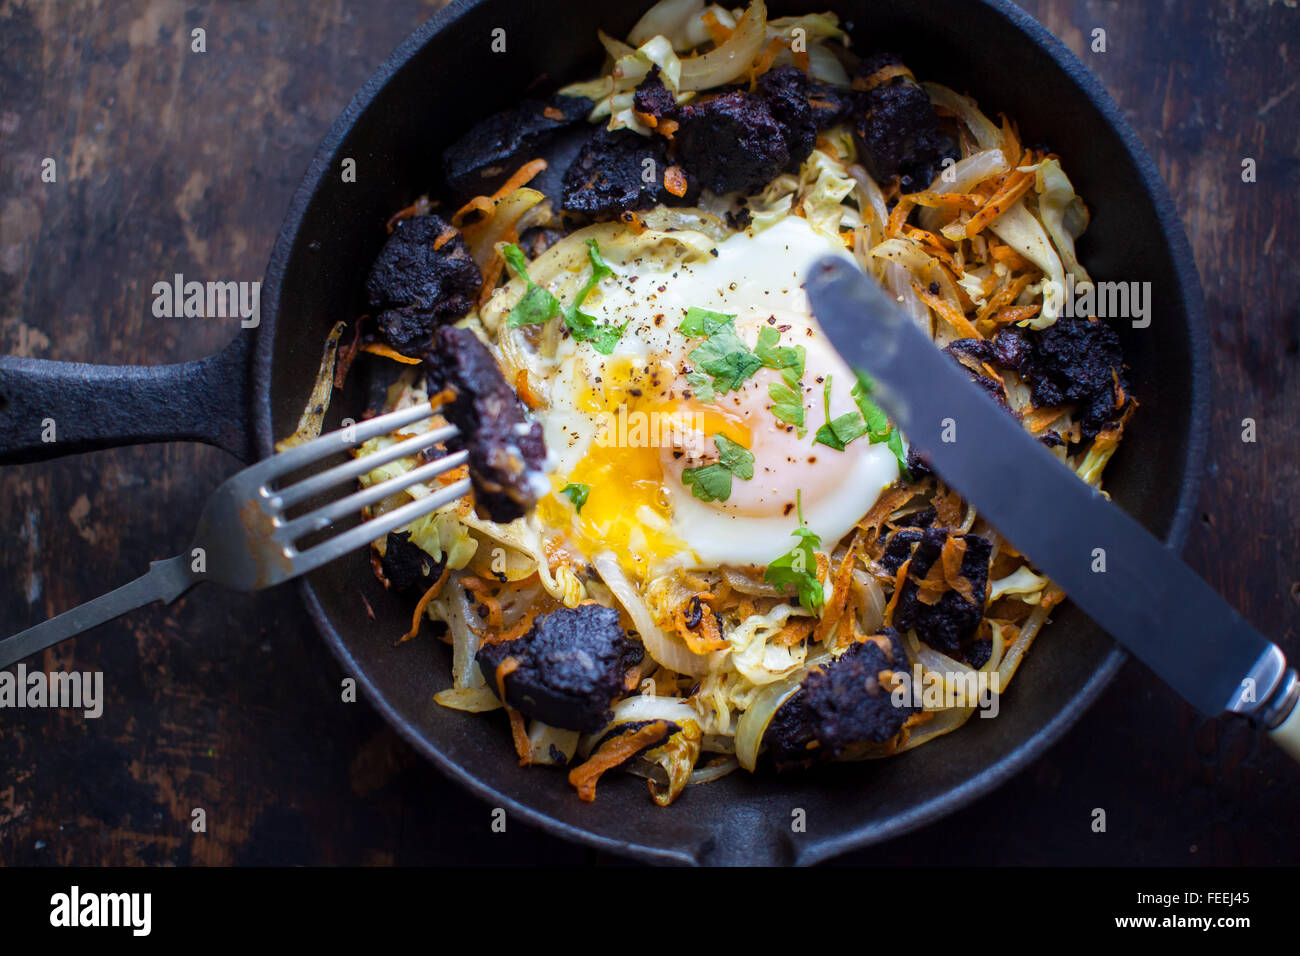 A skillet full of homemade black pudding hash. - Stock Image